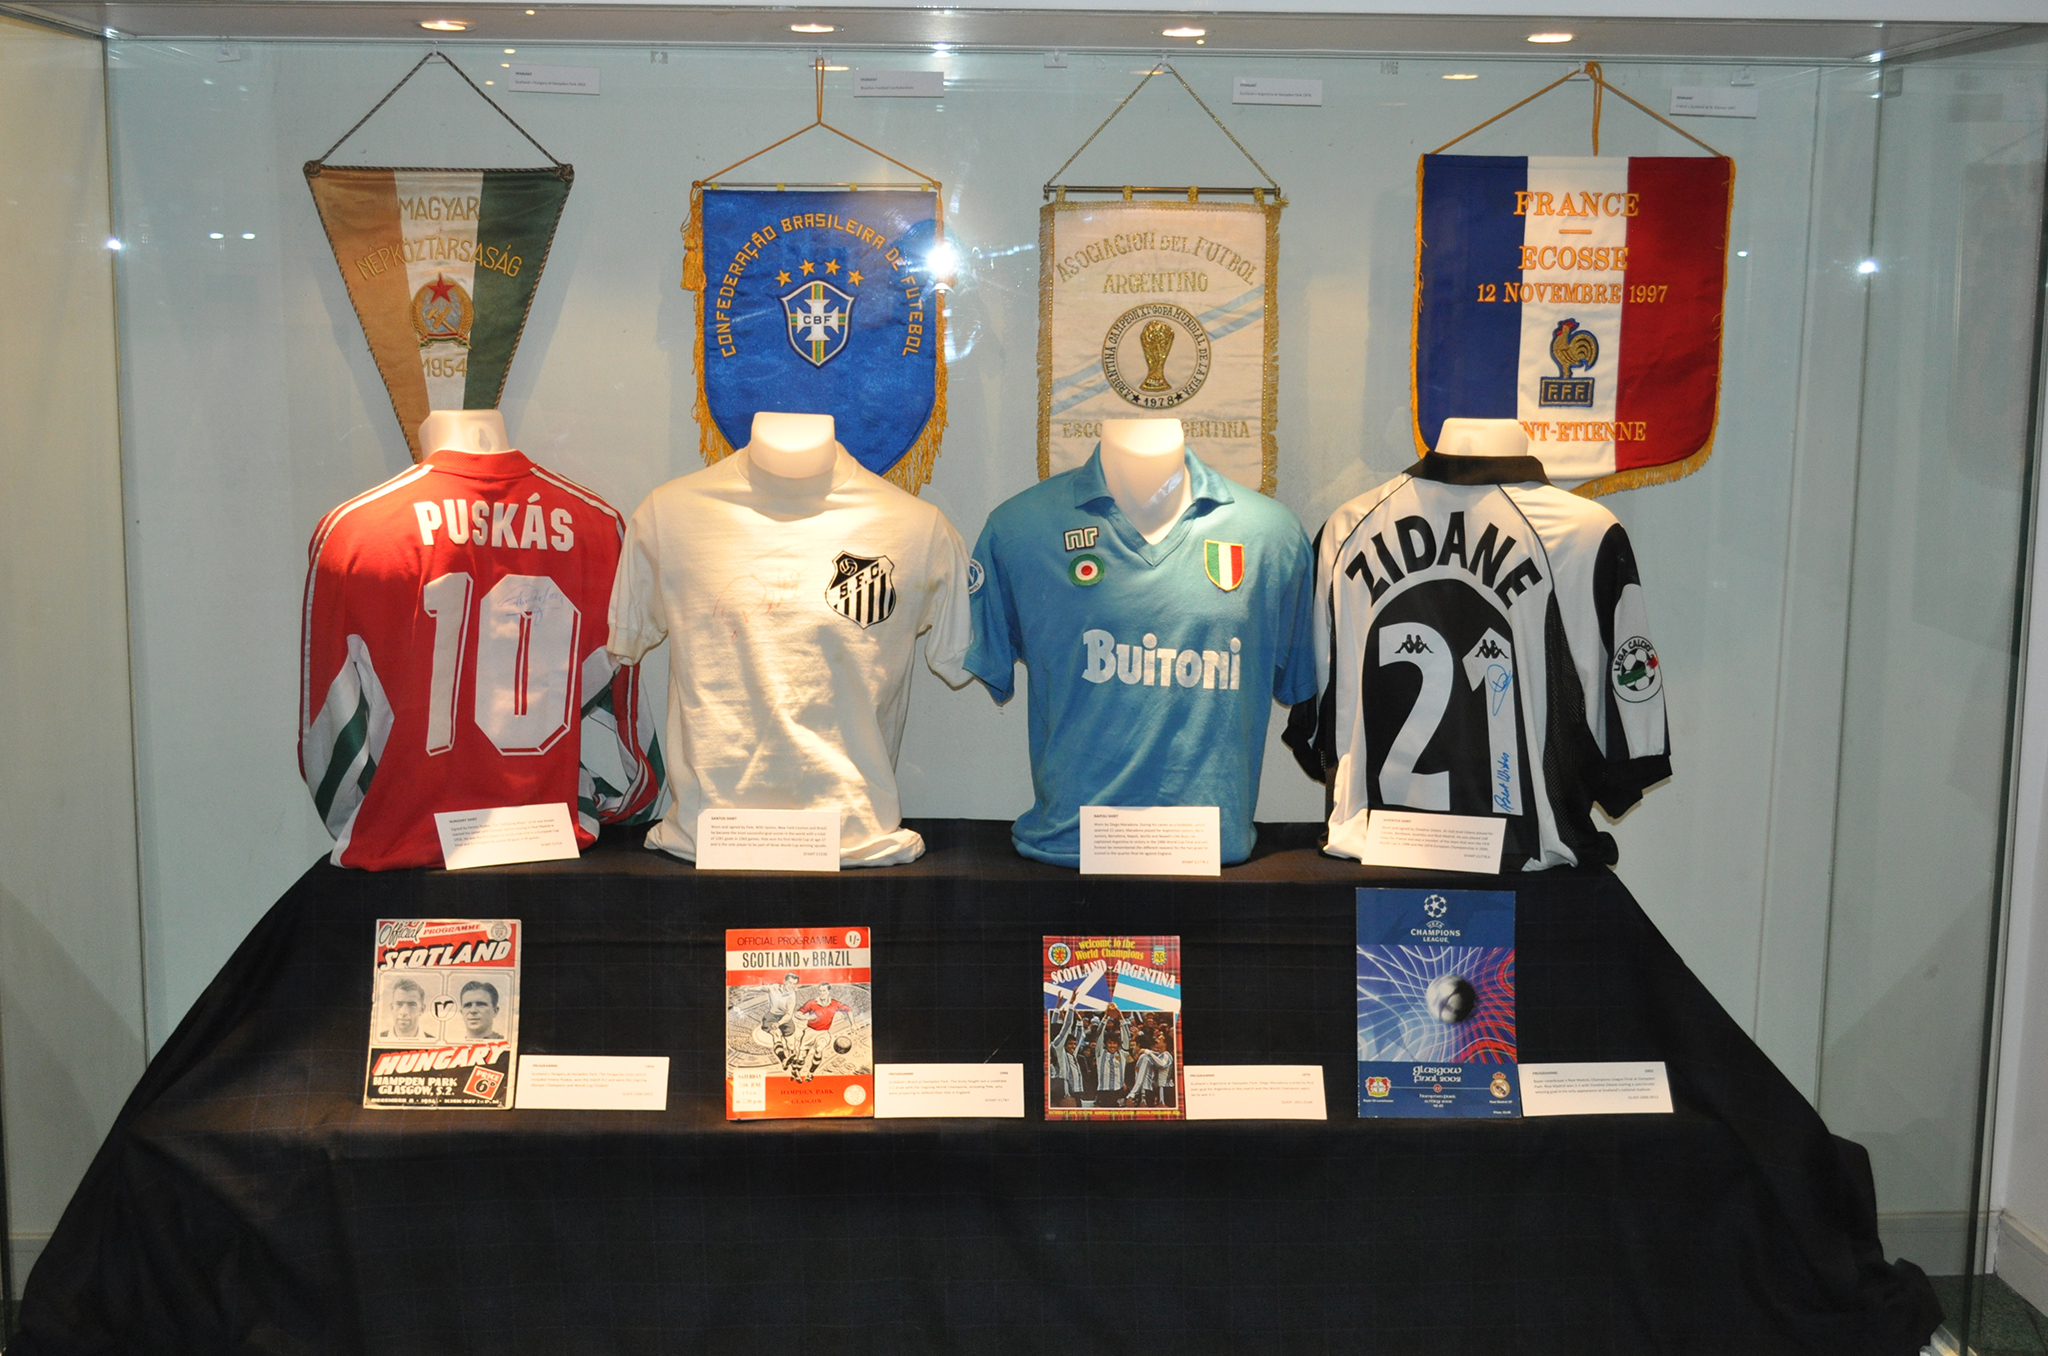 The Scottish Football Museum